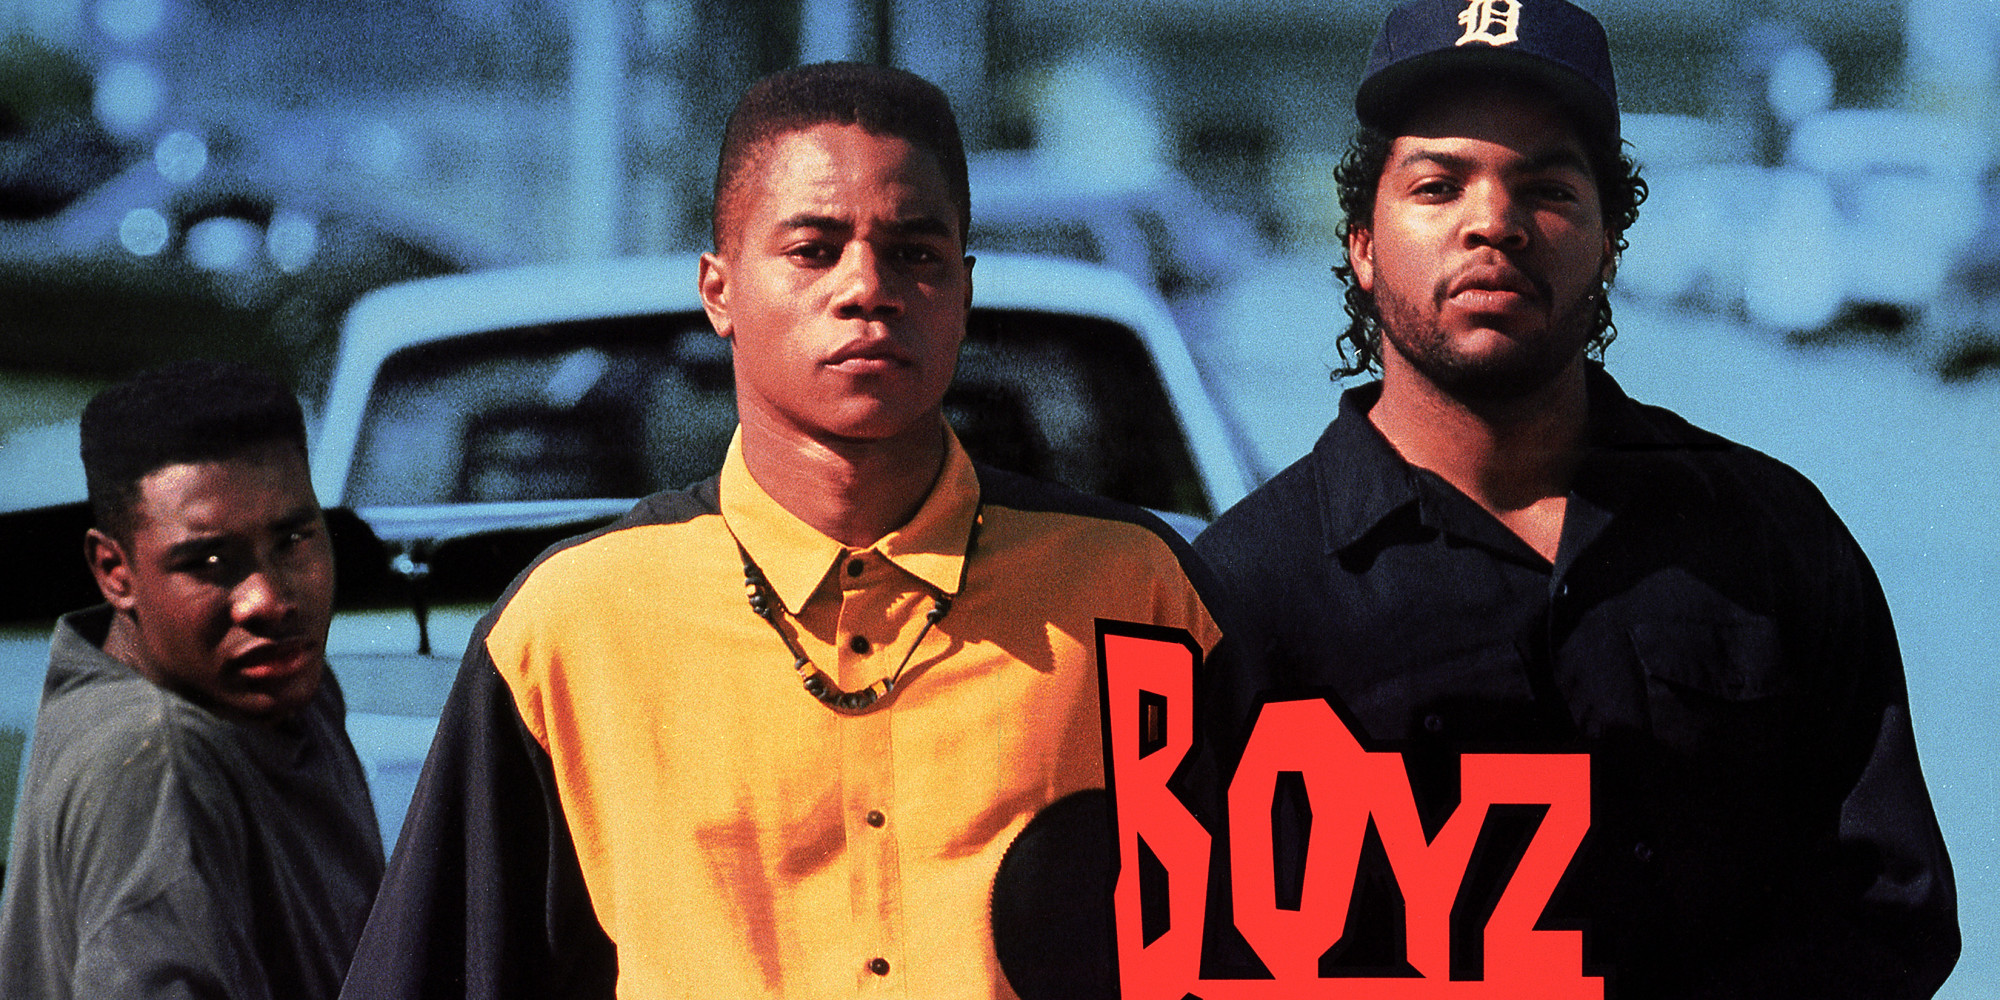 response to boyz n the hood N the hood (1991), which was released two years before menace ii society (1993 )  menace is a direct response to, boyz n the hood, the hughes brothers.